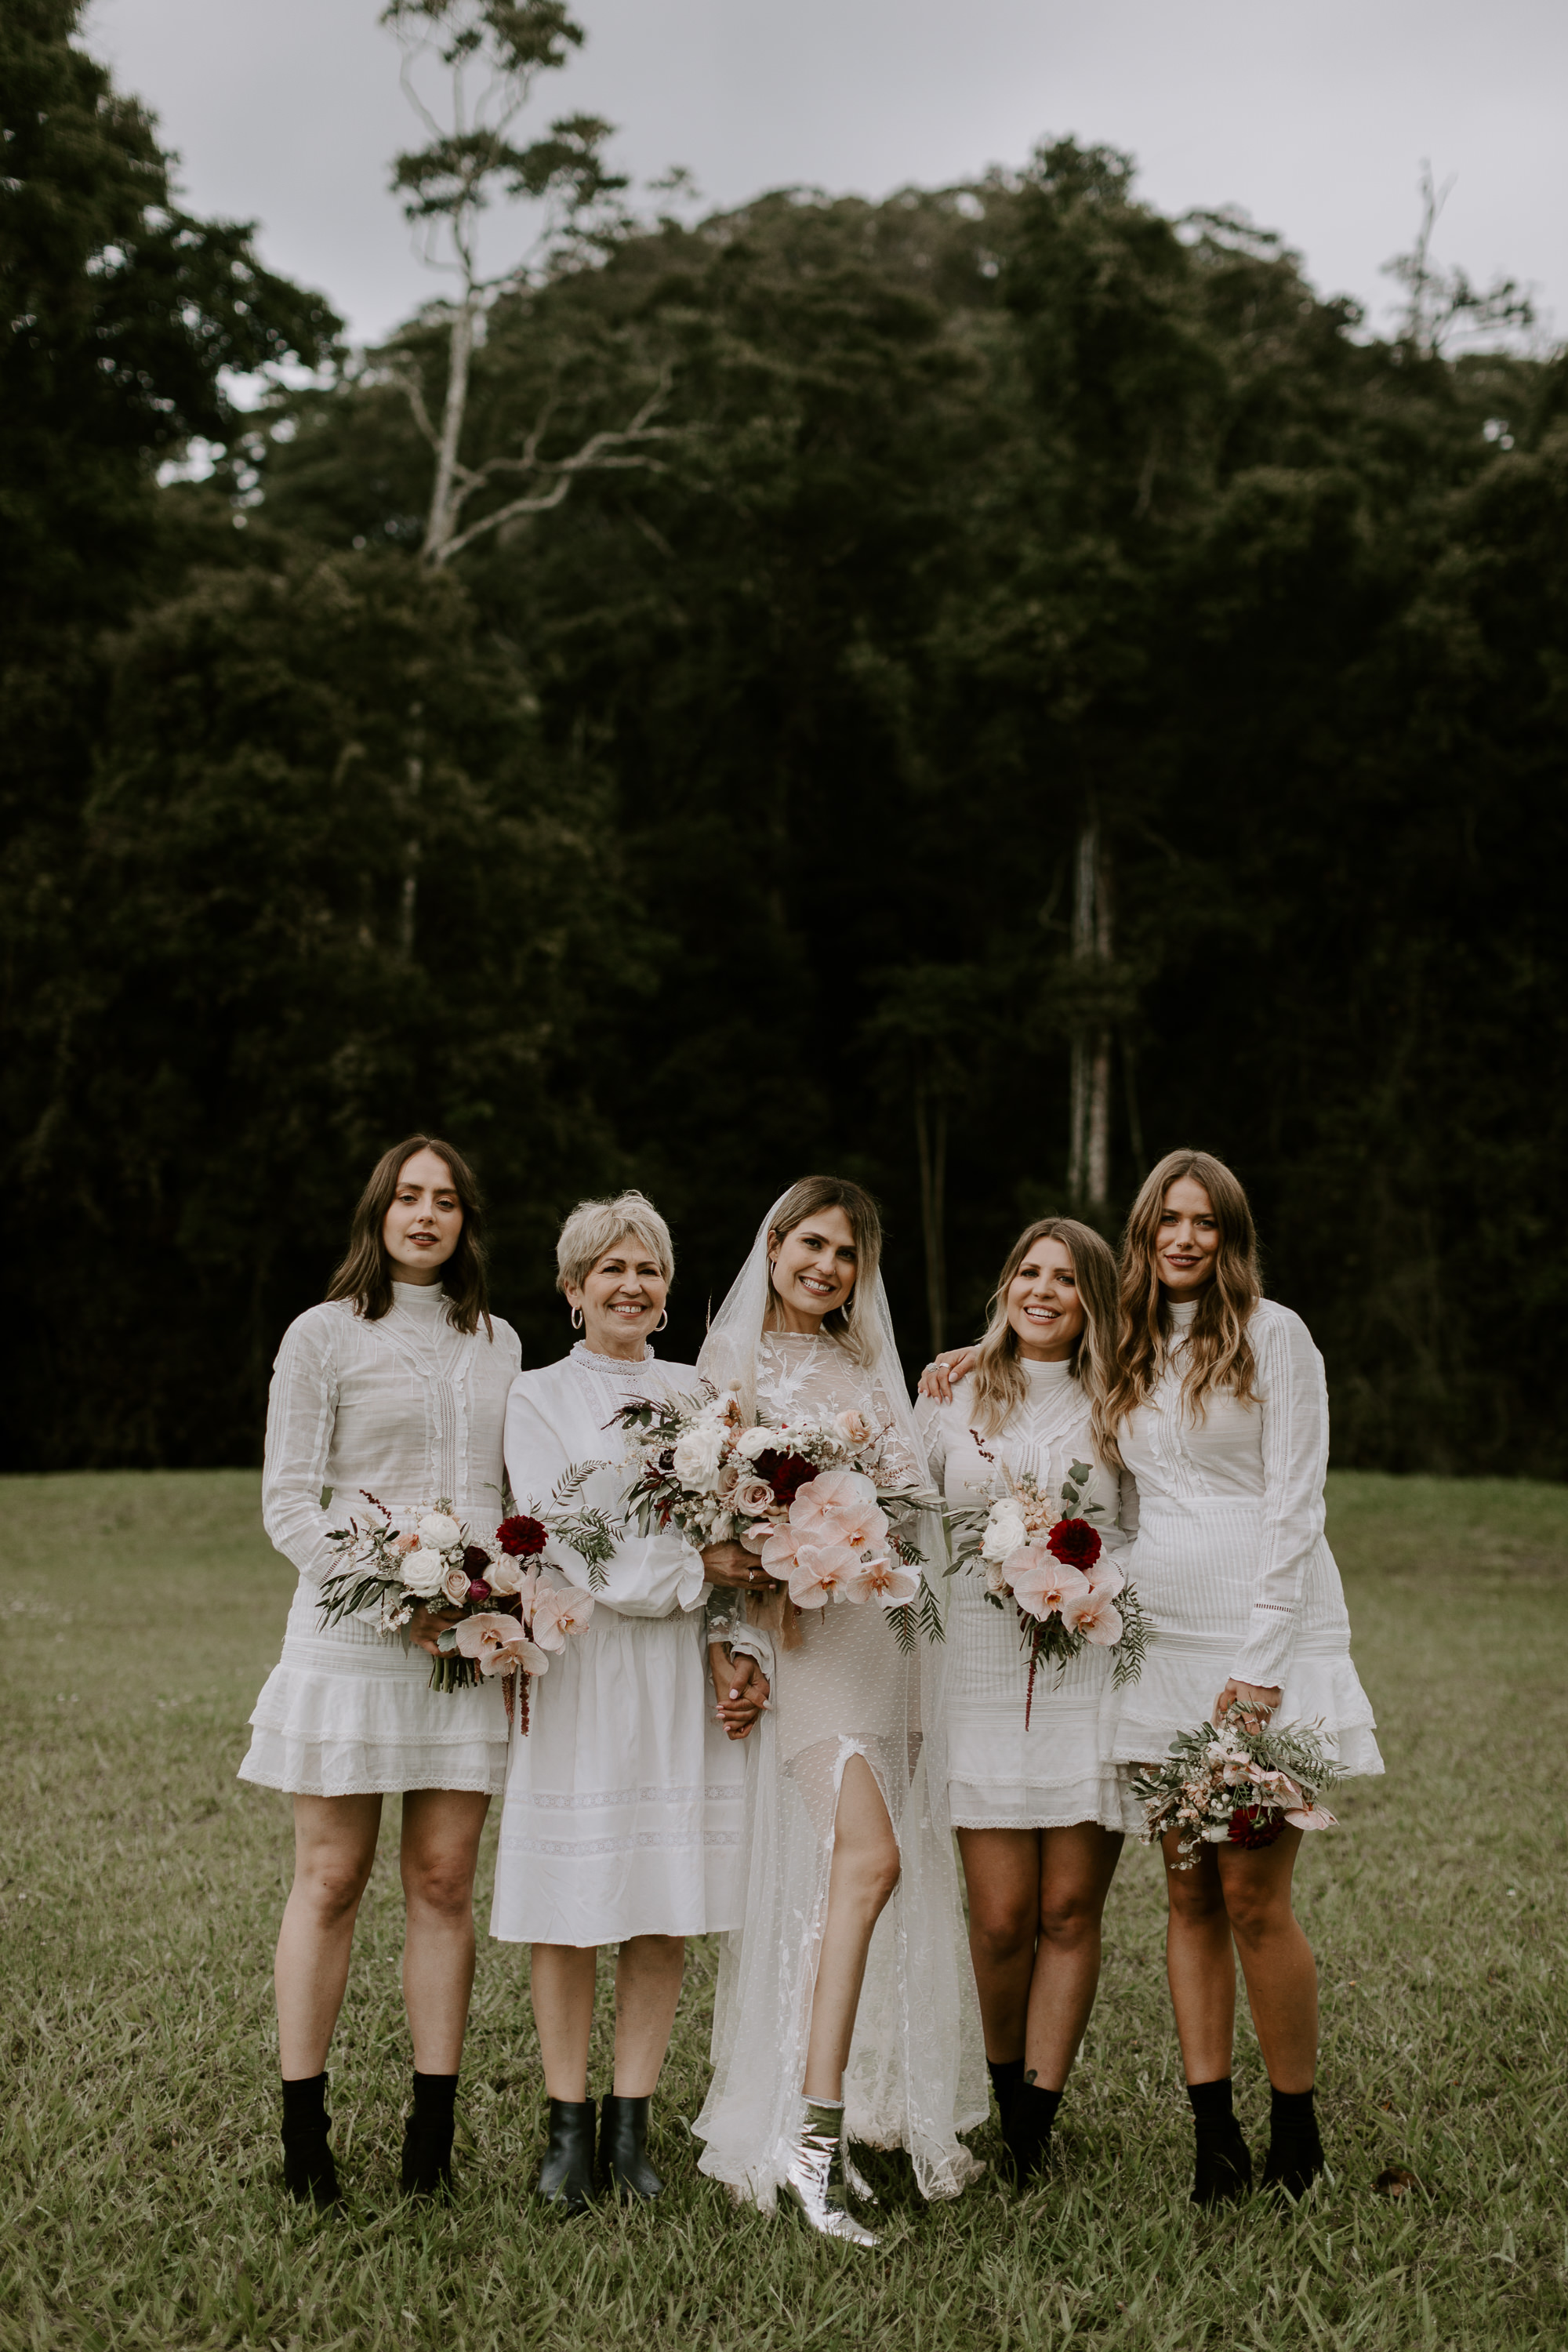 Honia with her mum and Bridesmaids.